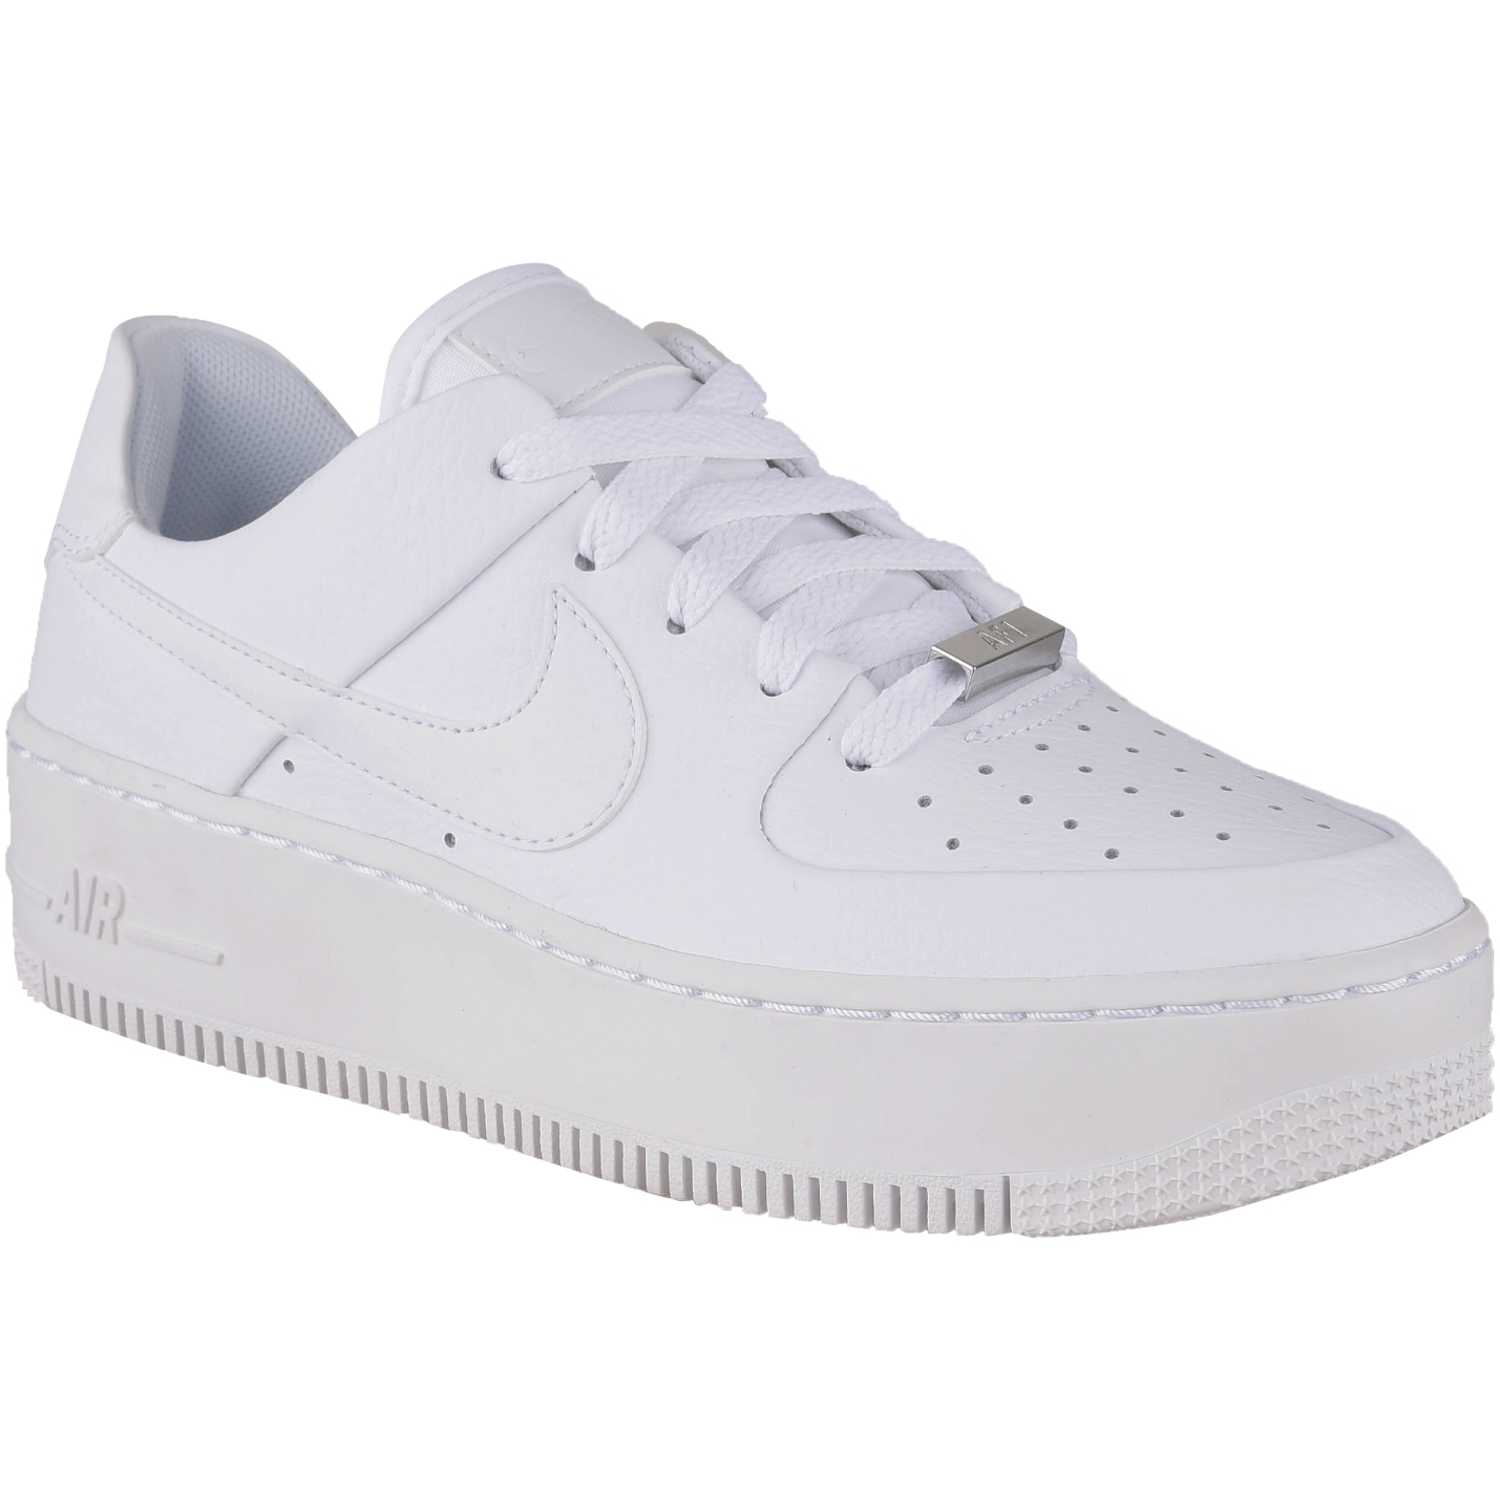 Casual de Mujer Nike Blanco wmns af1 sage lce xx